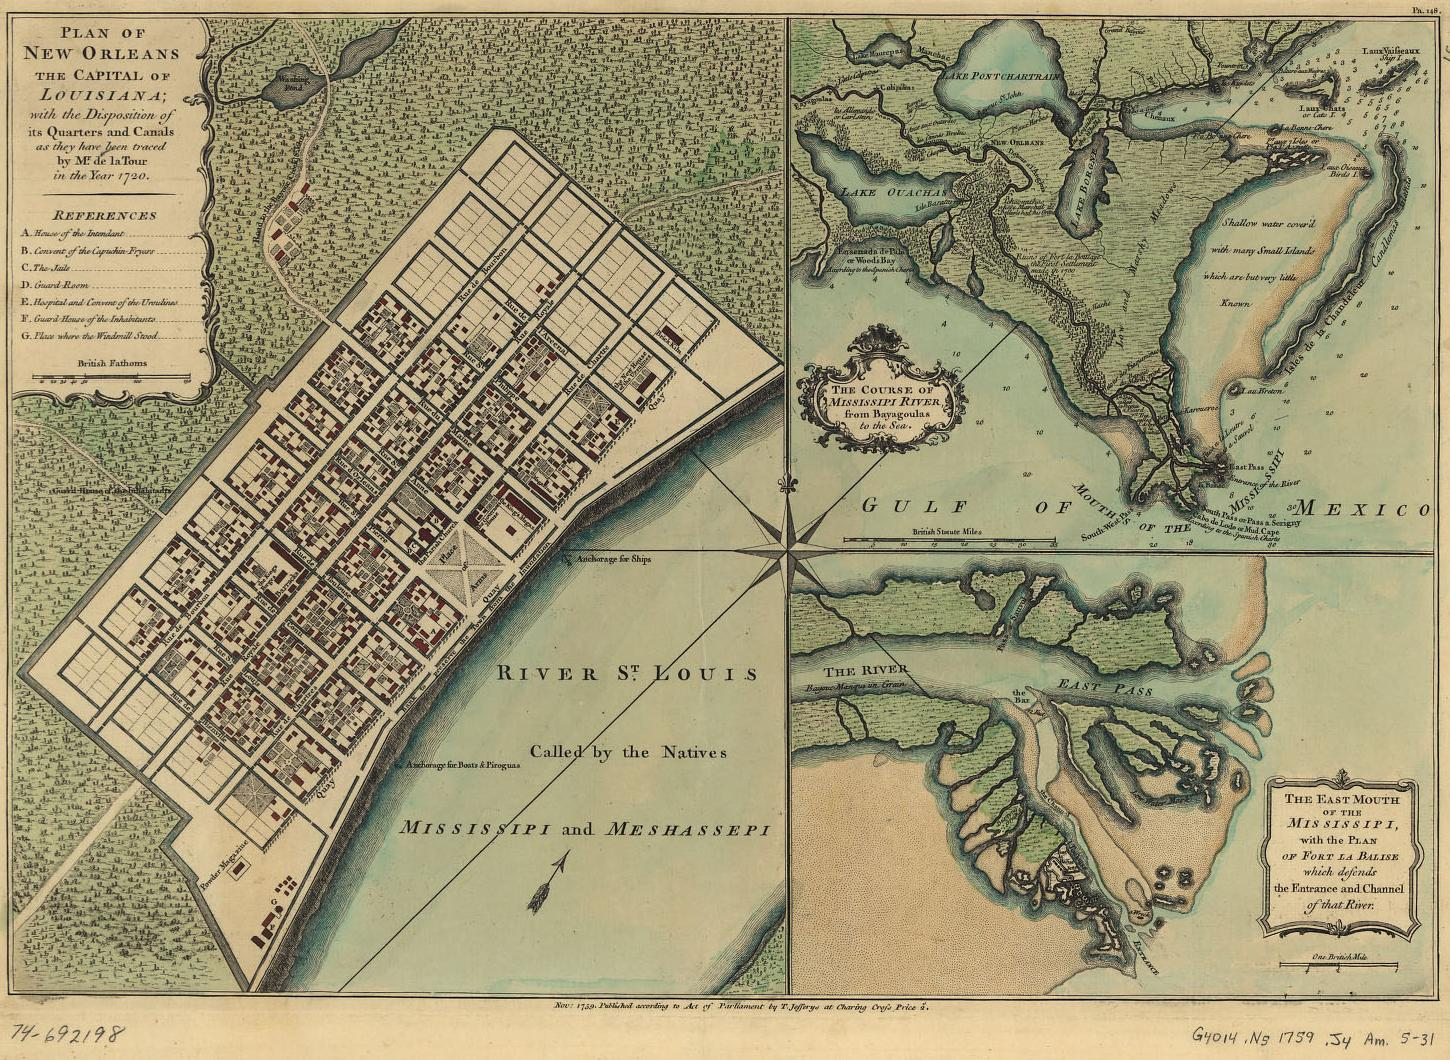 1759 map with road to Bayou St. John (and then to the Lake